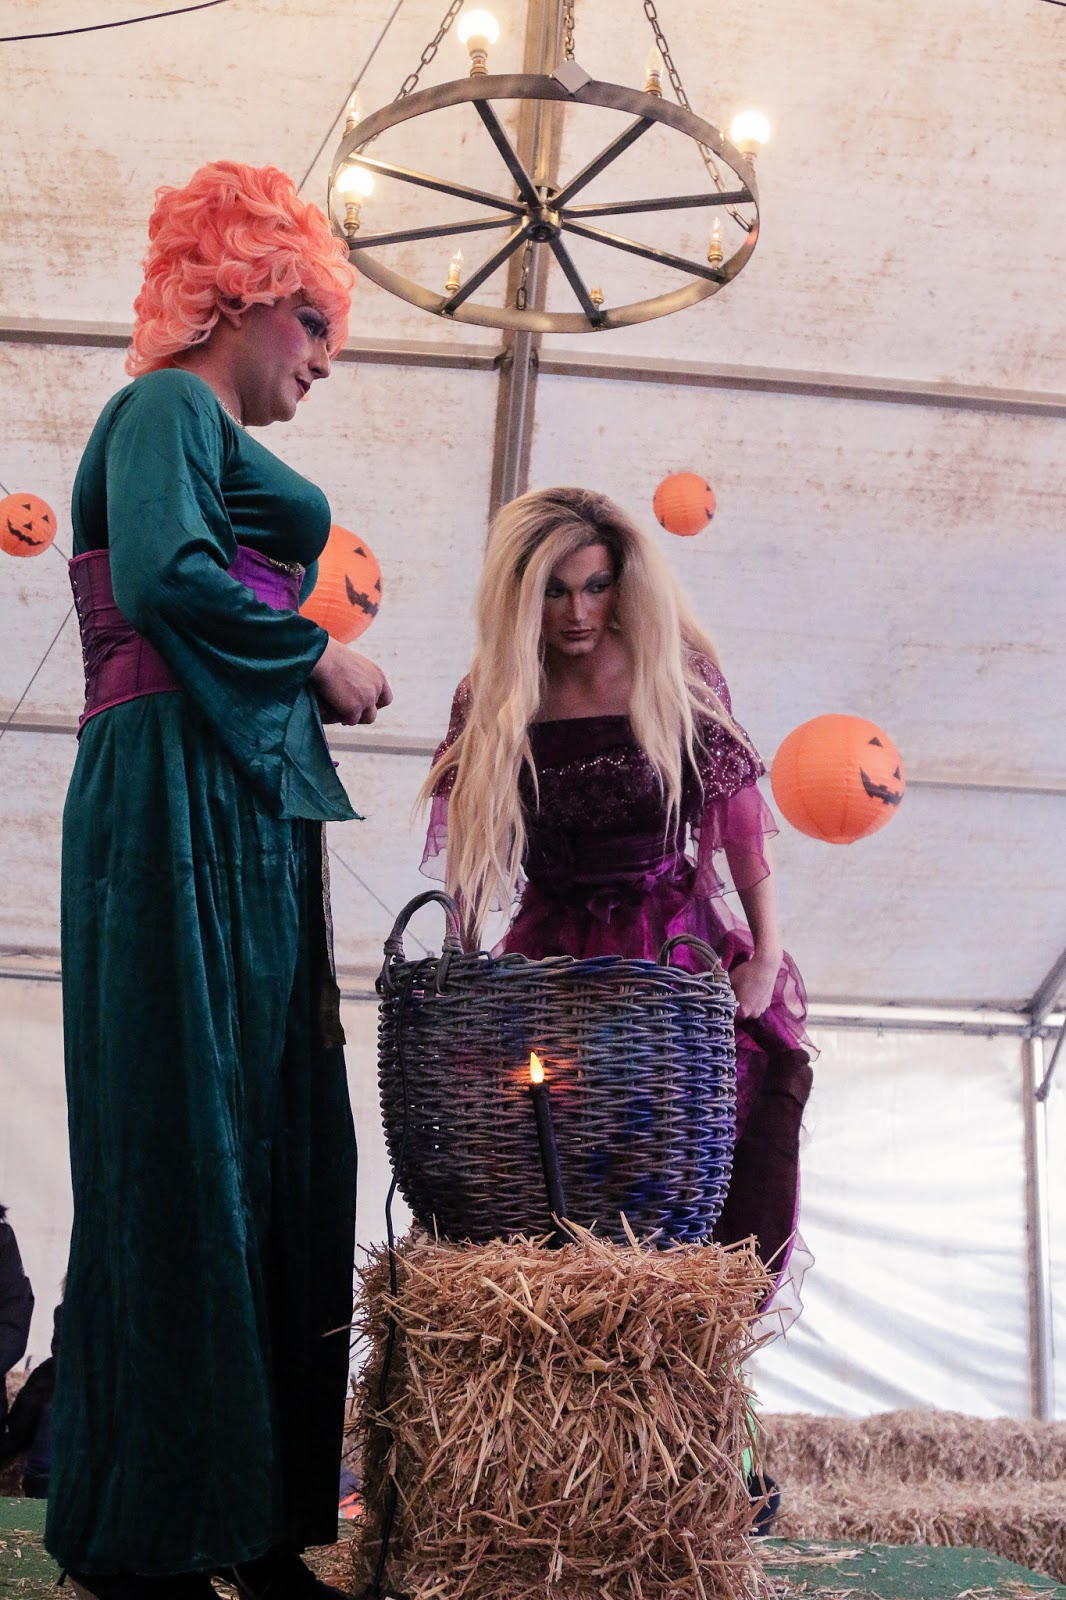 Mid shot of the three witches at the M&D's pumpkin festival - Three drag queens dressed up as the three hocus pocus witches.